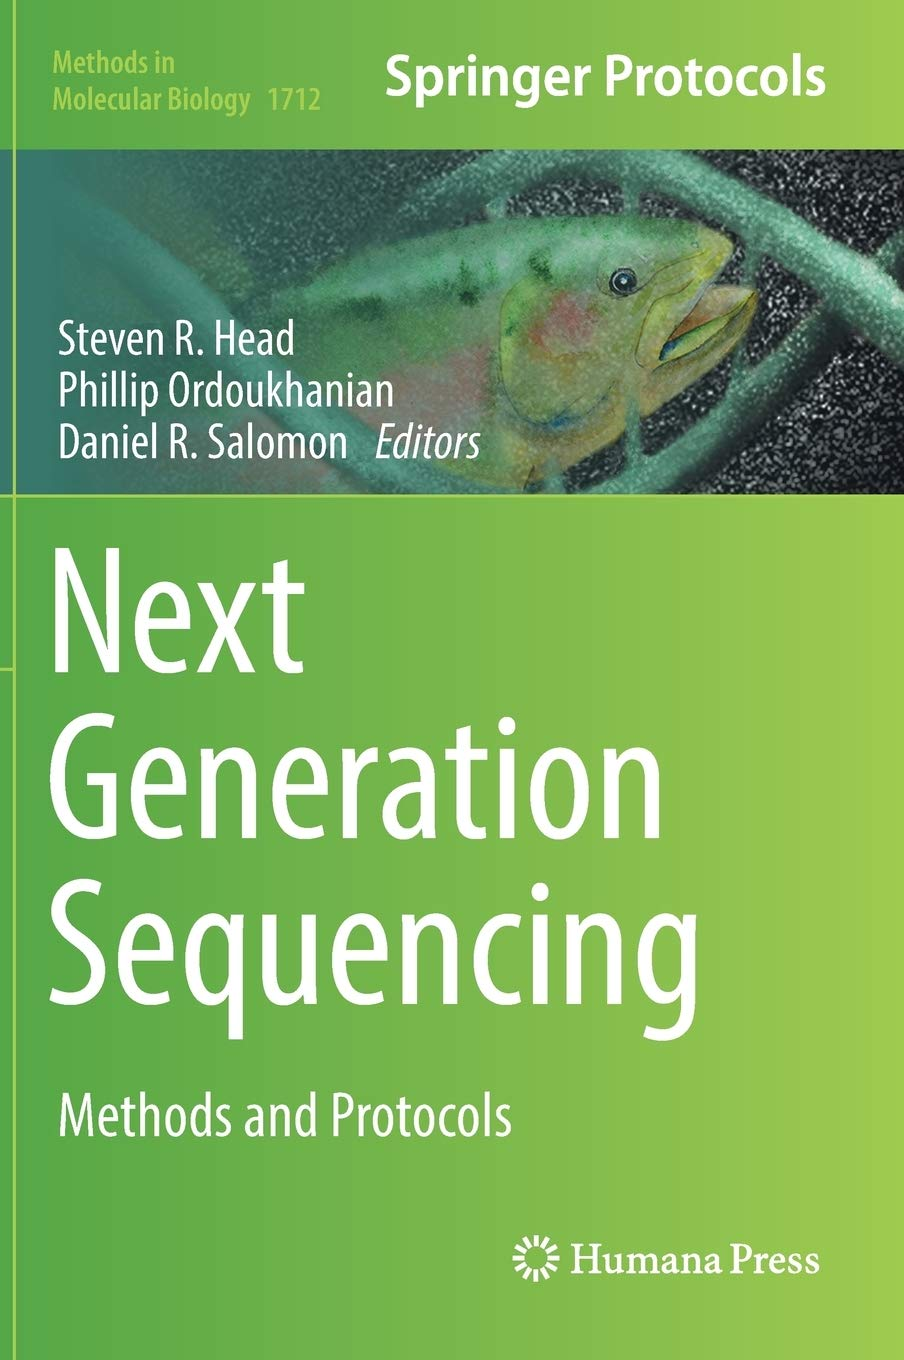 Next Generation Sequencing  Methods And Protocols  Methods In Molecular Biology Band 1712